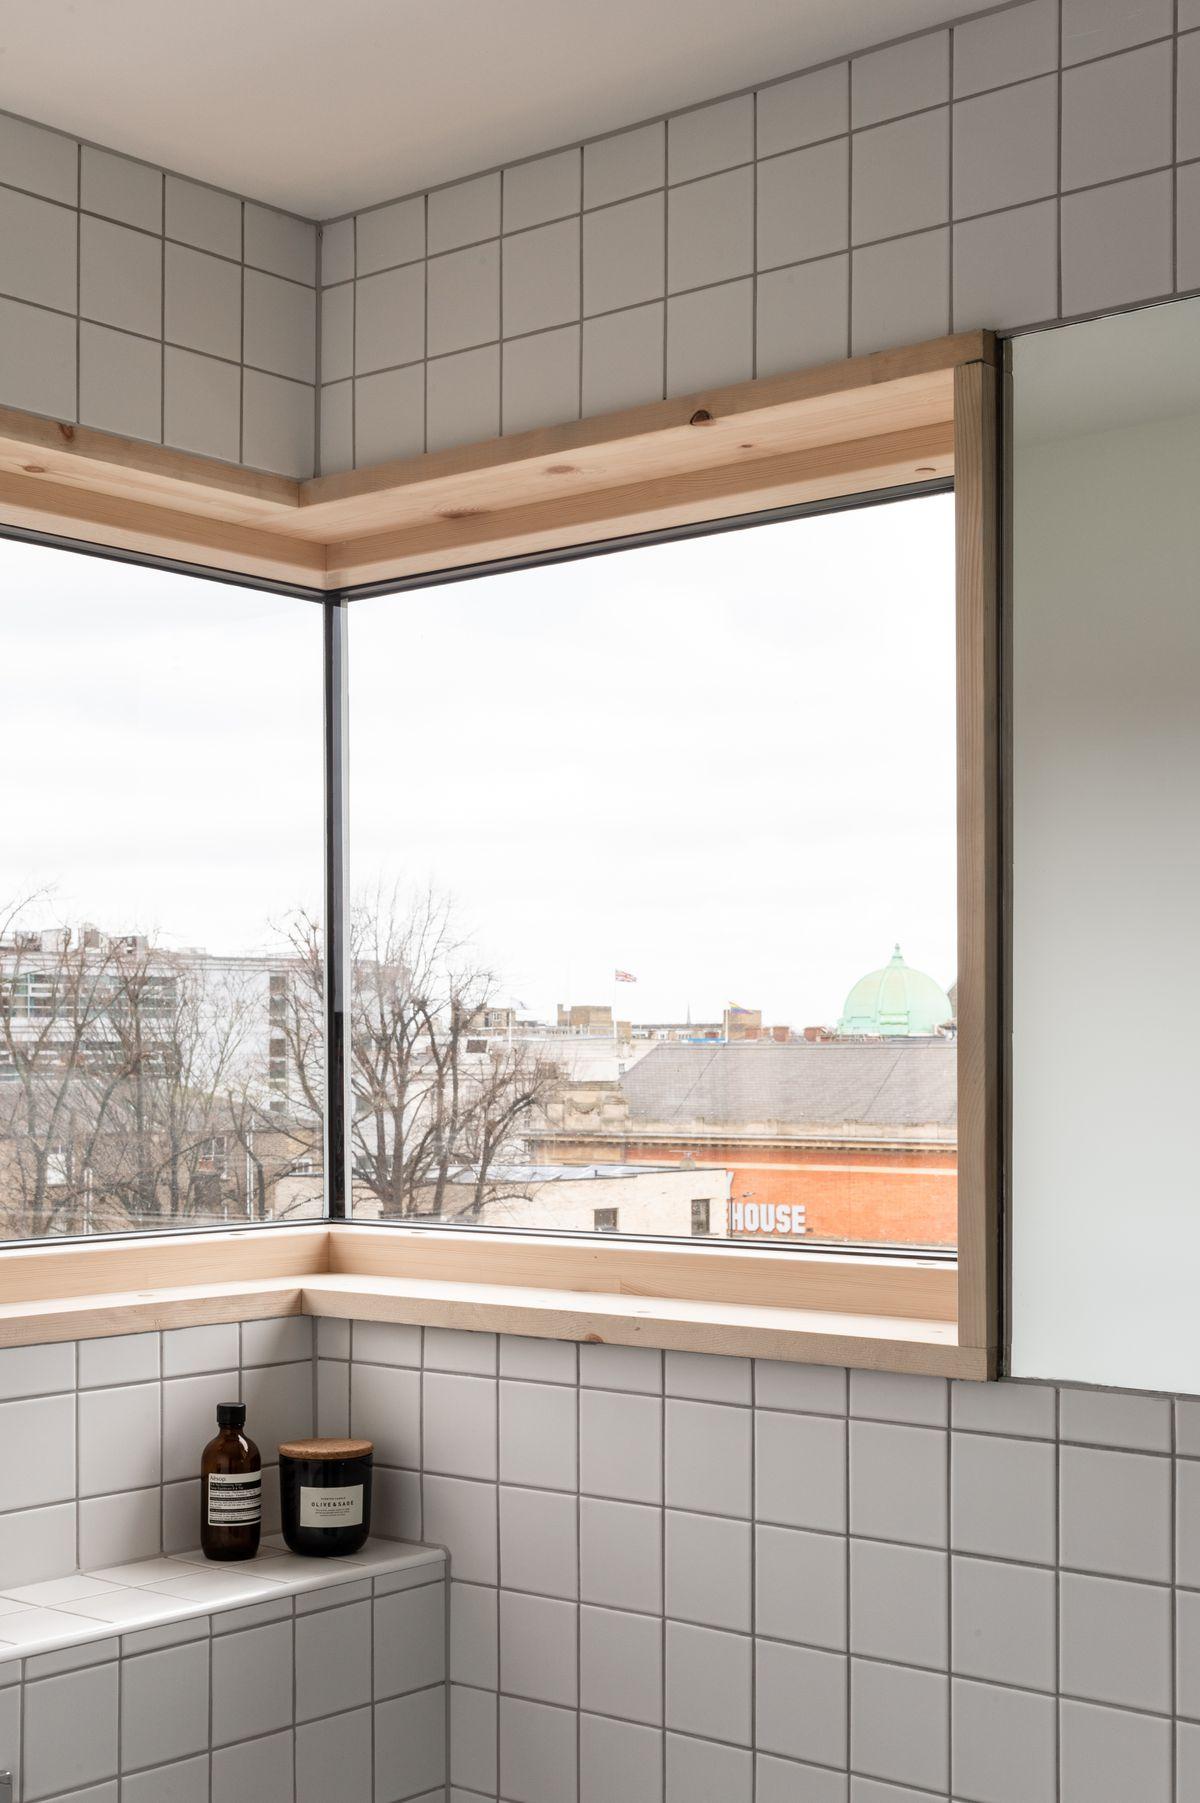 Corner of a bathroom with grid tiles and windows.